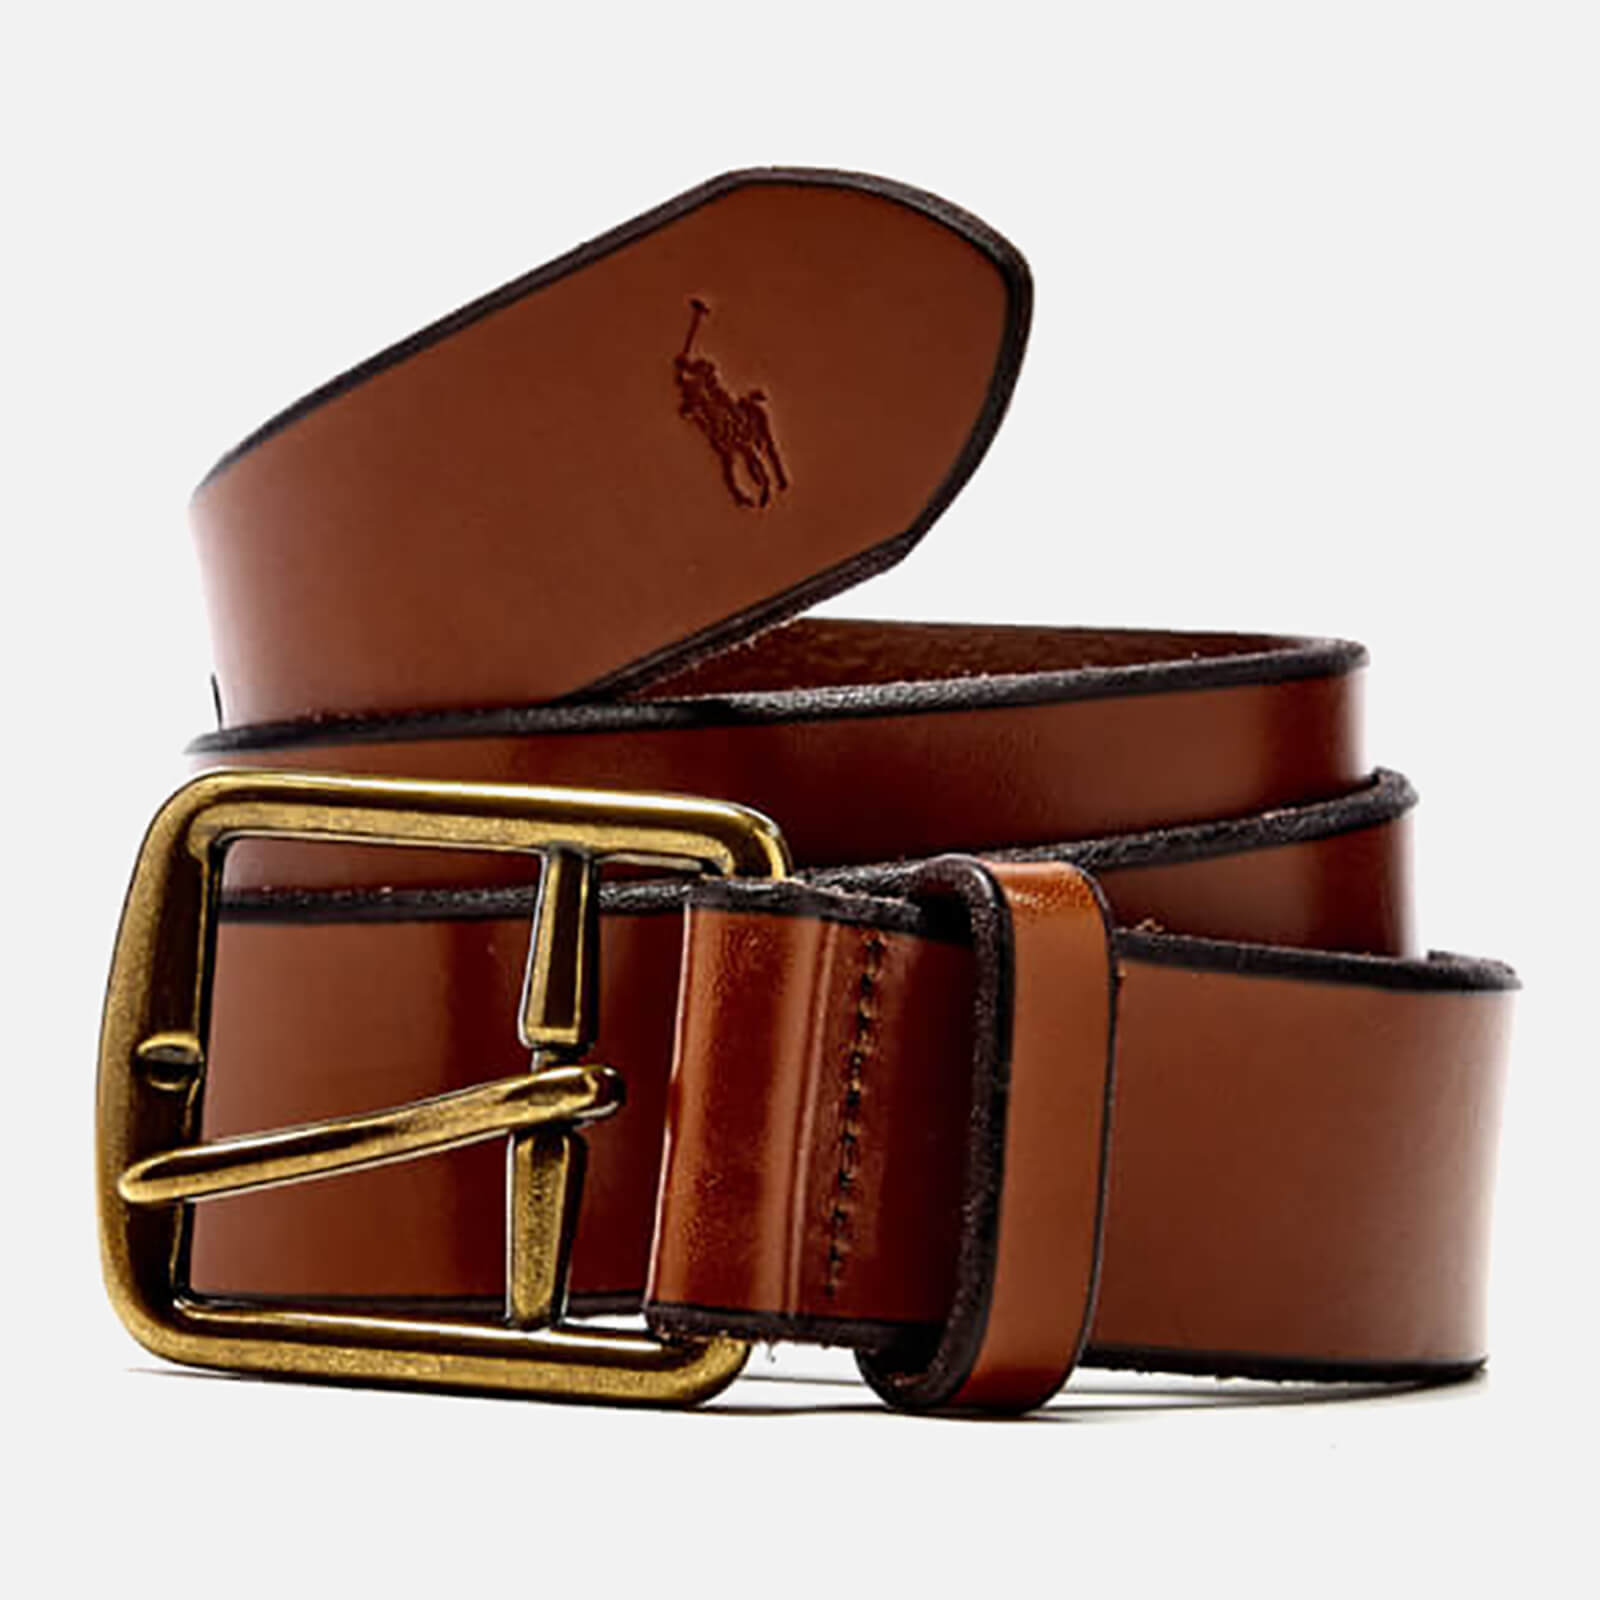 Leather Saddle Ralph Belt Lauren Men's Polo k8wnOX0P